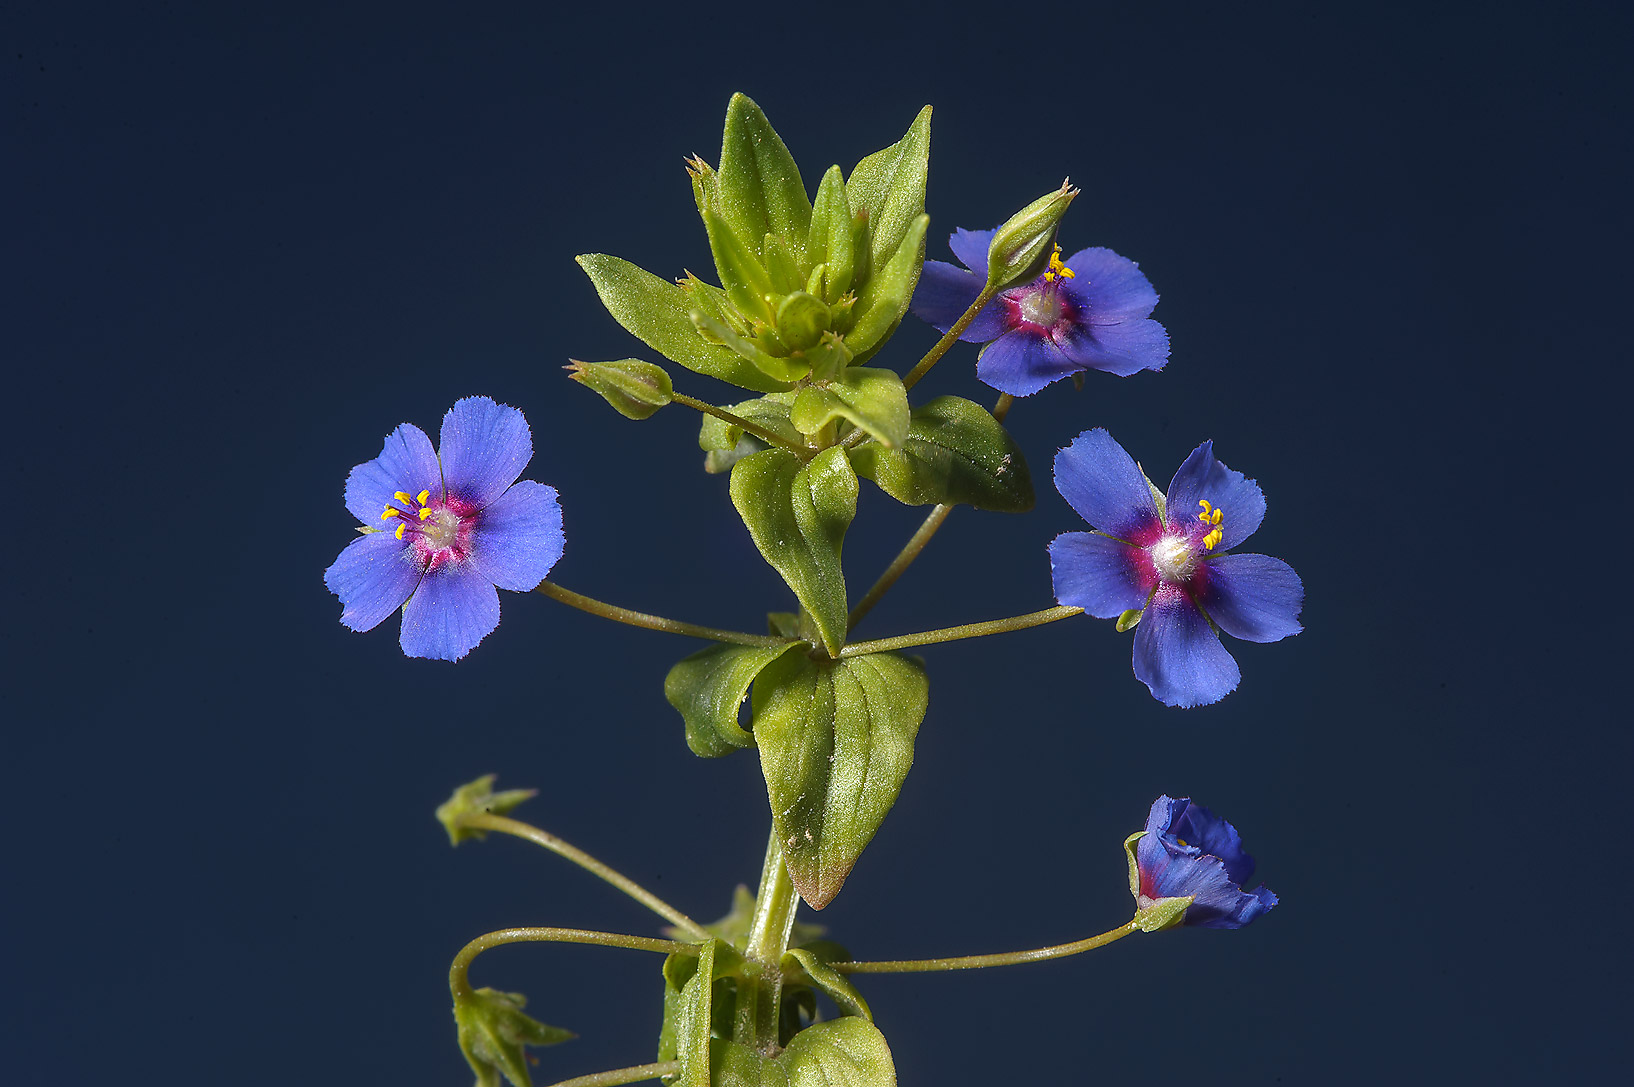 Blooming scarlet pimpernel (Anagallis arvensis...farms area, in north-western Qatar